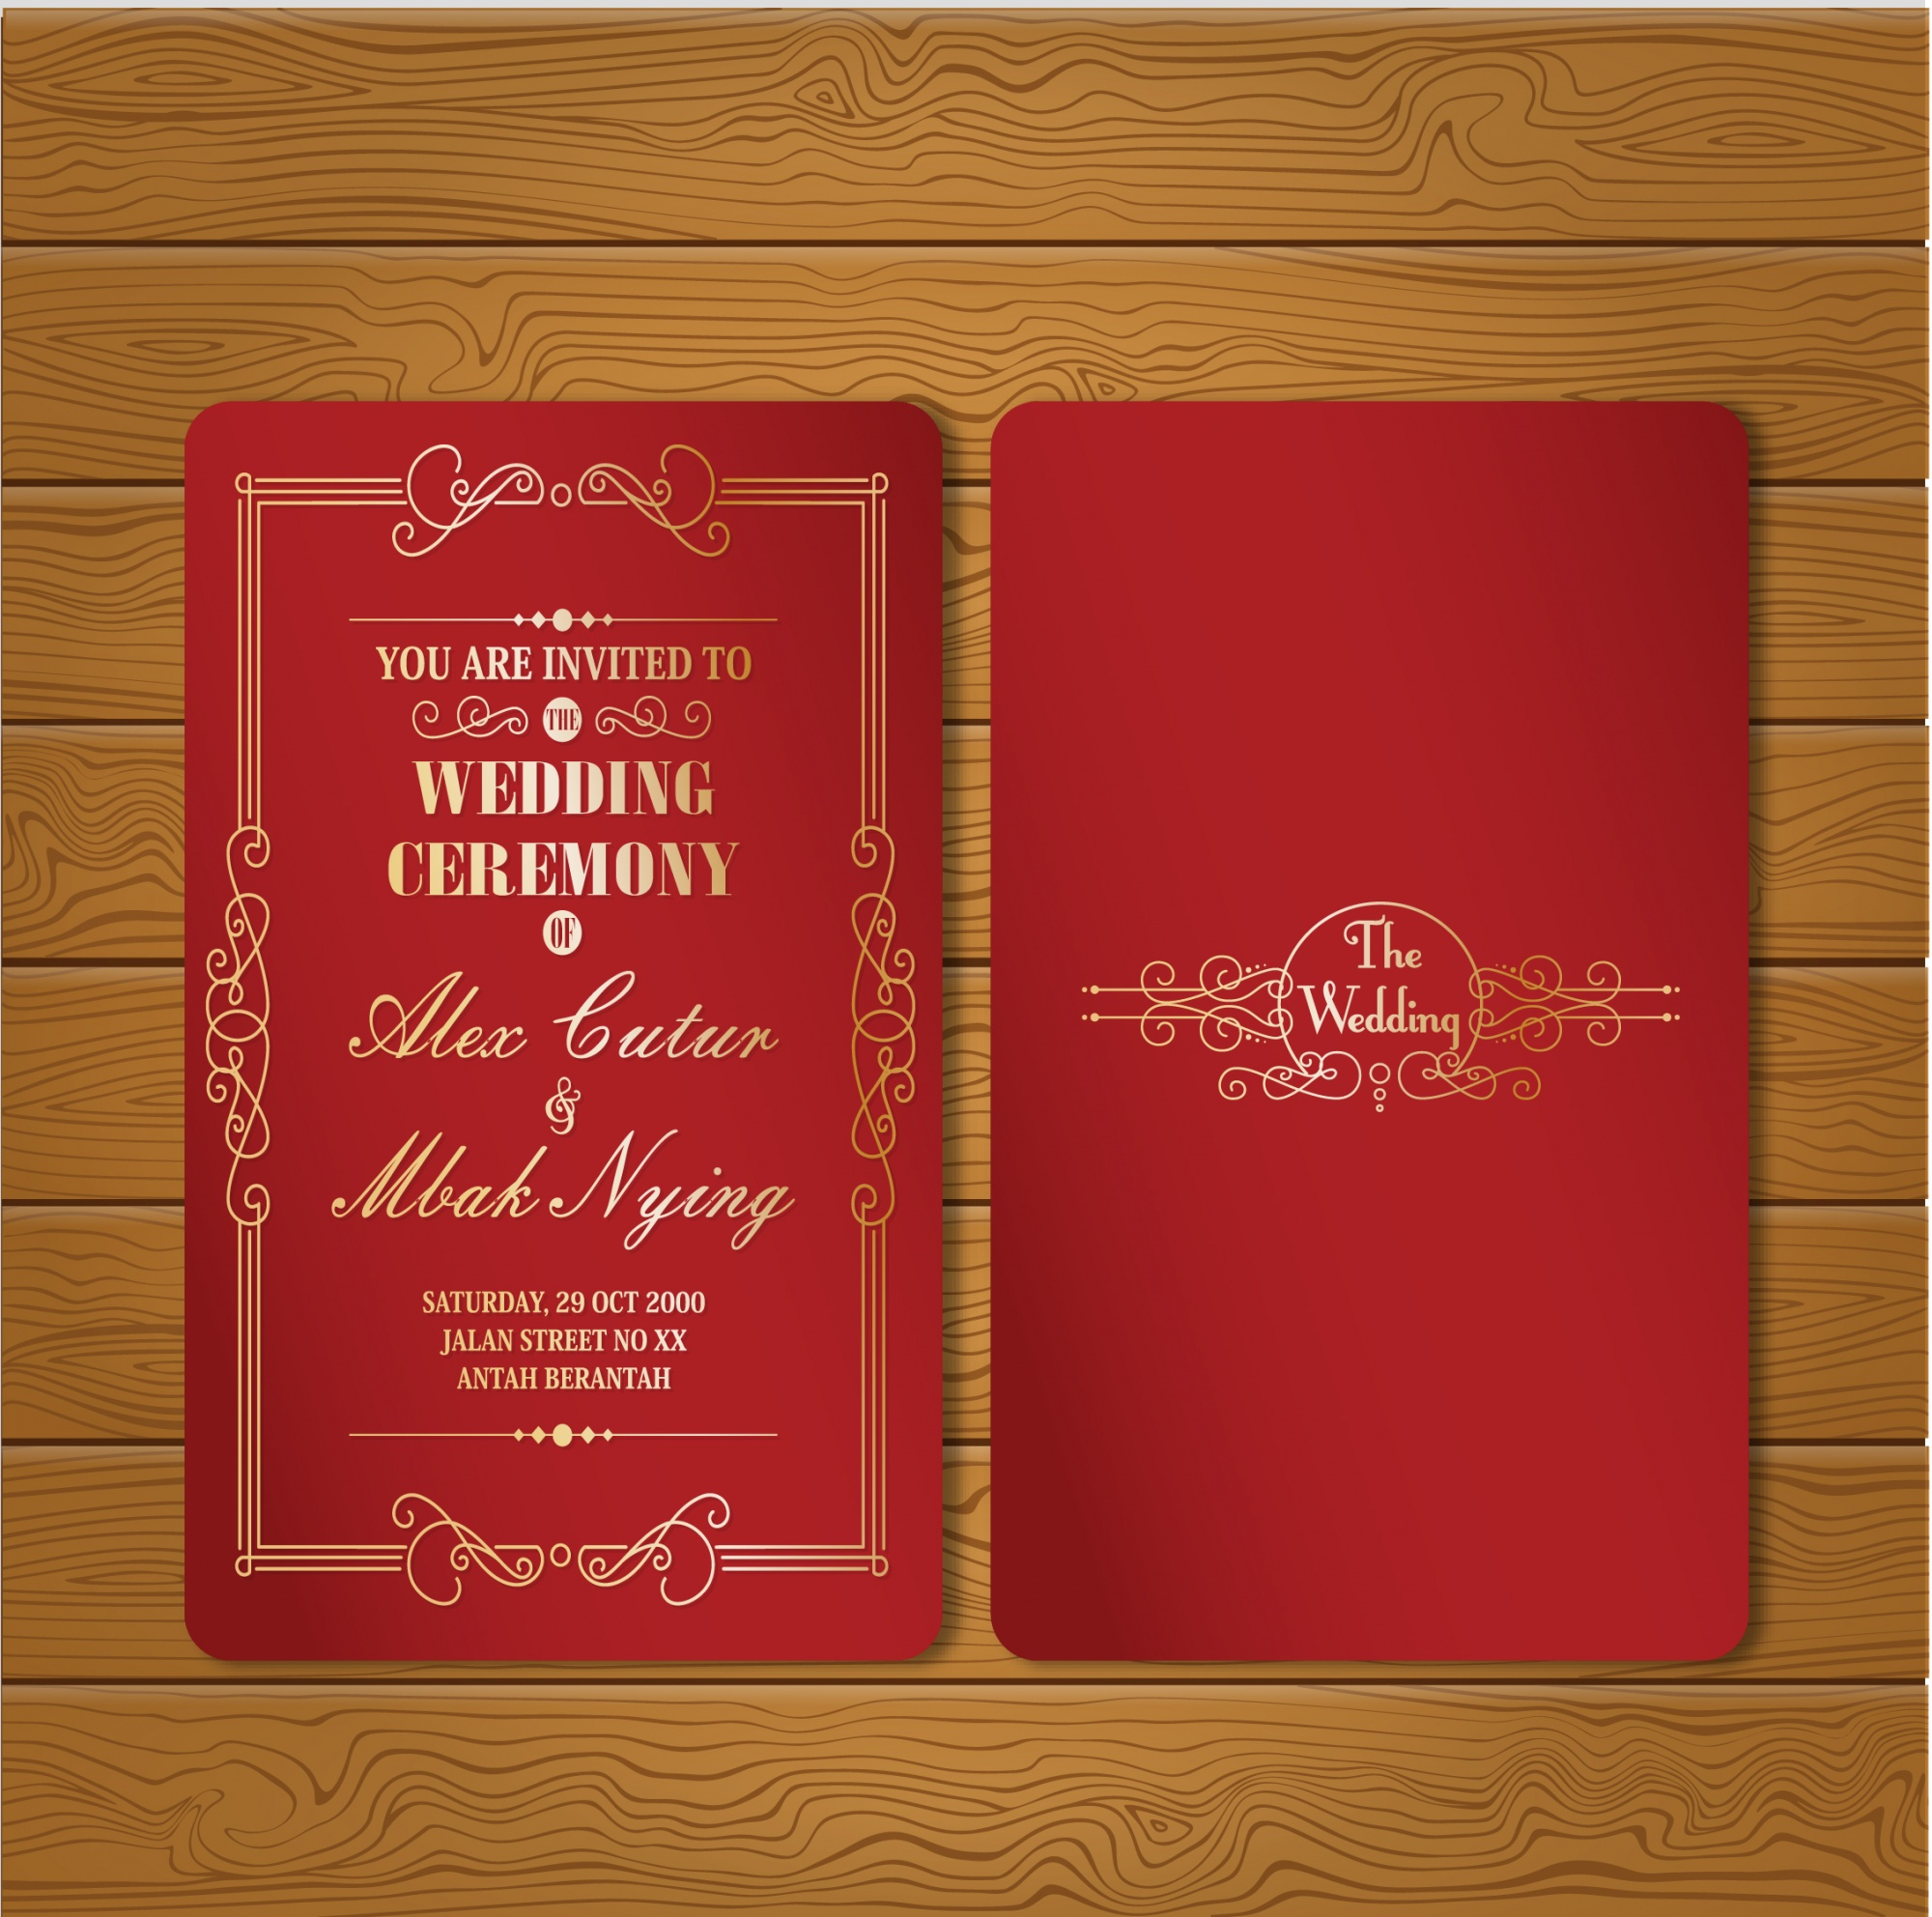 Red and gold wedding card